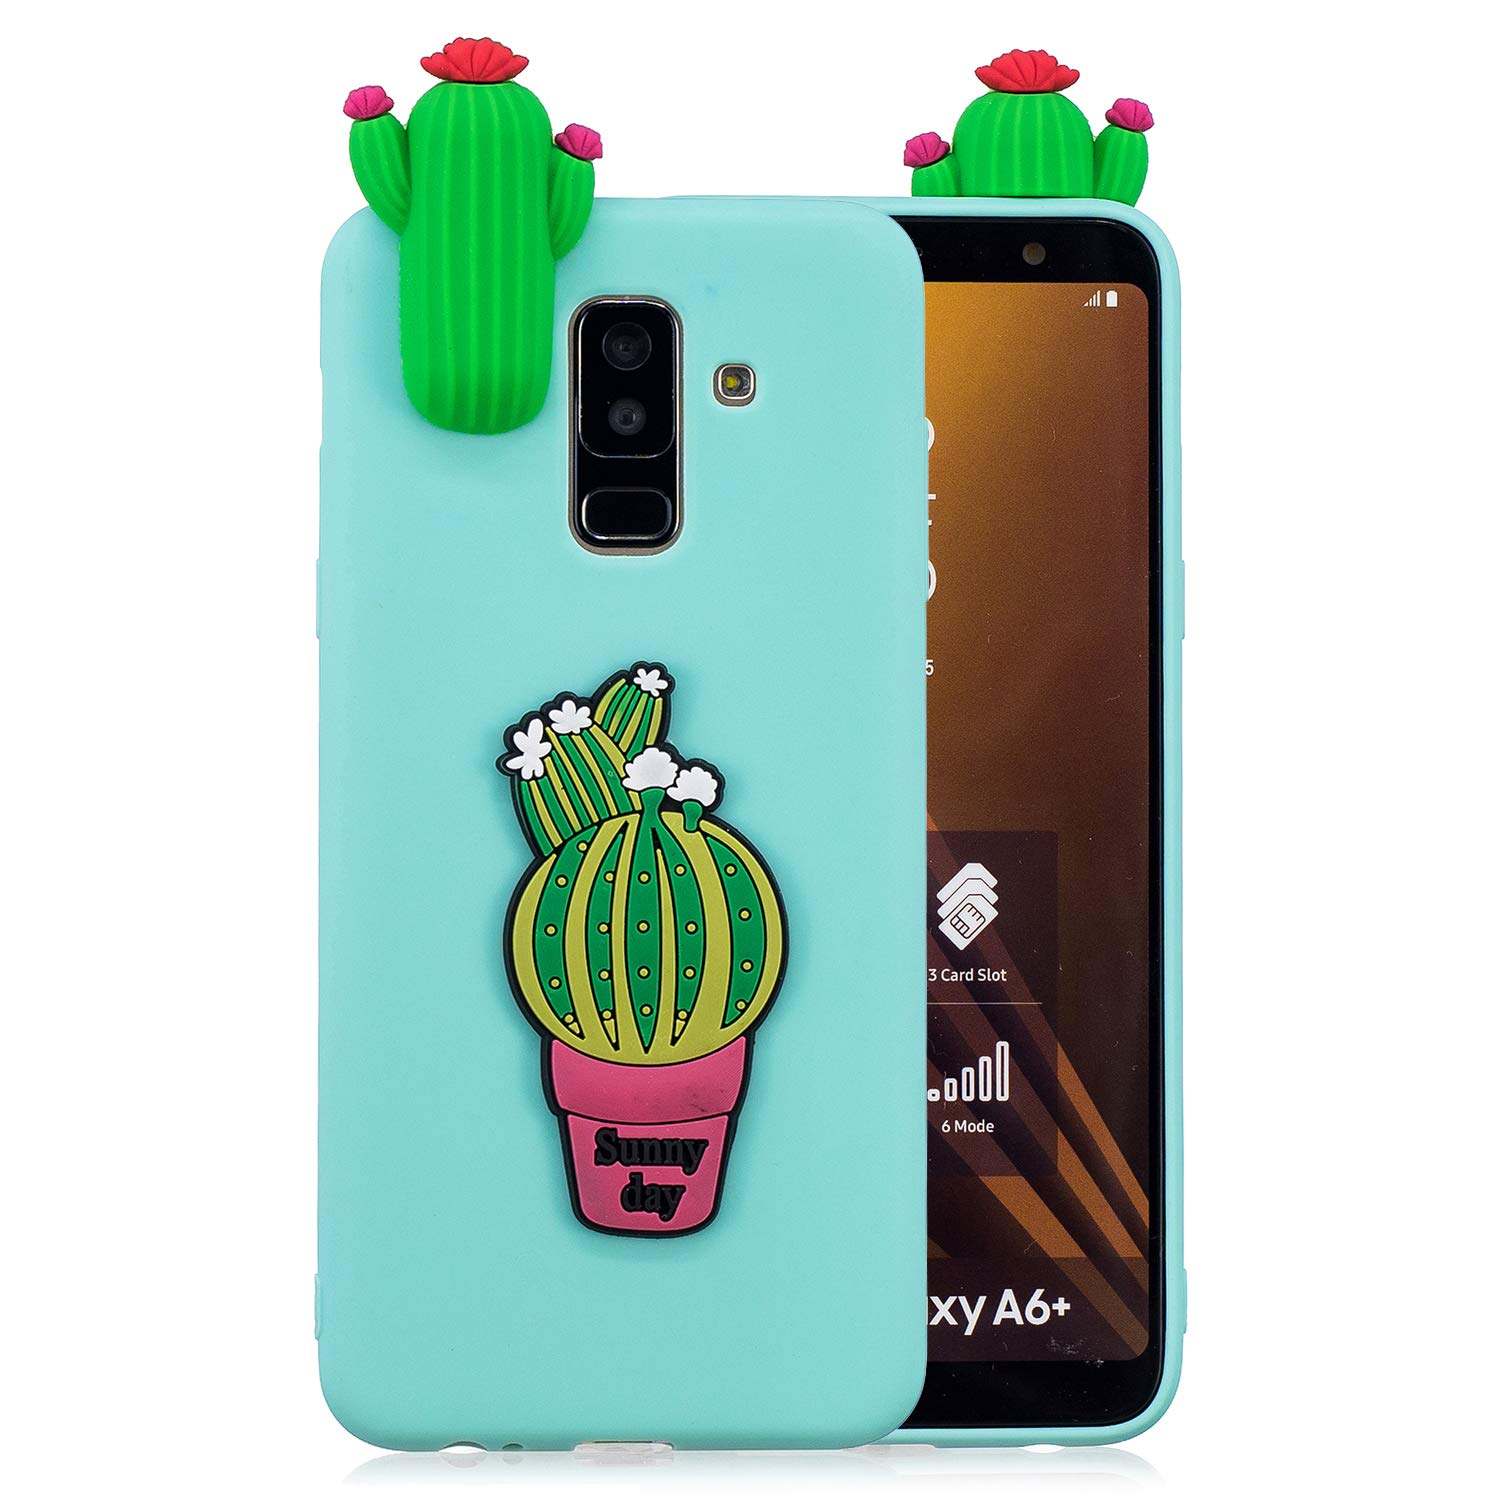 HopMore Coque Samsung Galaxy A6 Plus 2018 Silicone Souple 3D Design Motif Fruit Animal Drôle Mignonne Etui Samsung Galxy J8 2018 / Samsung A6+ Étui Antichoc Ultra Mince Fine Gel Bumper Slim Case Housse Protection pour Fille Femme - Fruit Noir